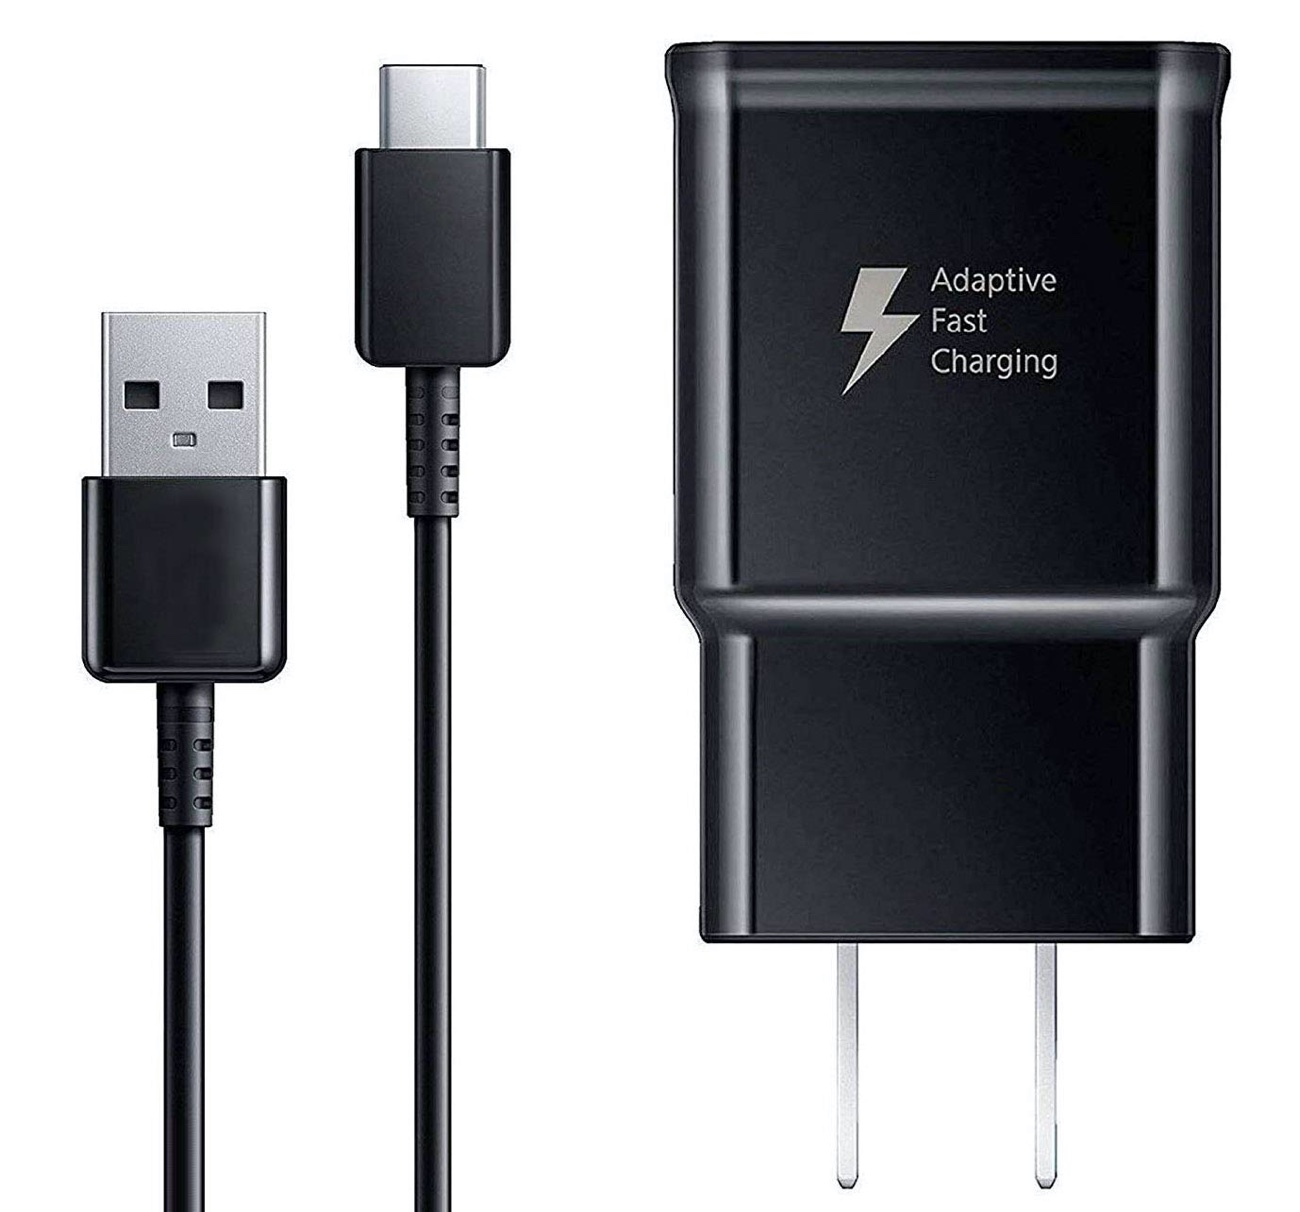 Samsung to Follow Apple and Stop Offering Power Adapters With Smartphones Next Year - MacRumors